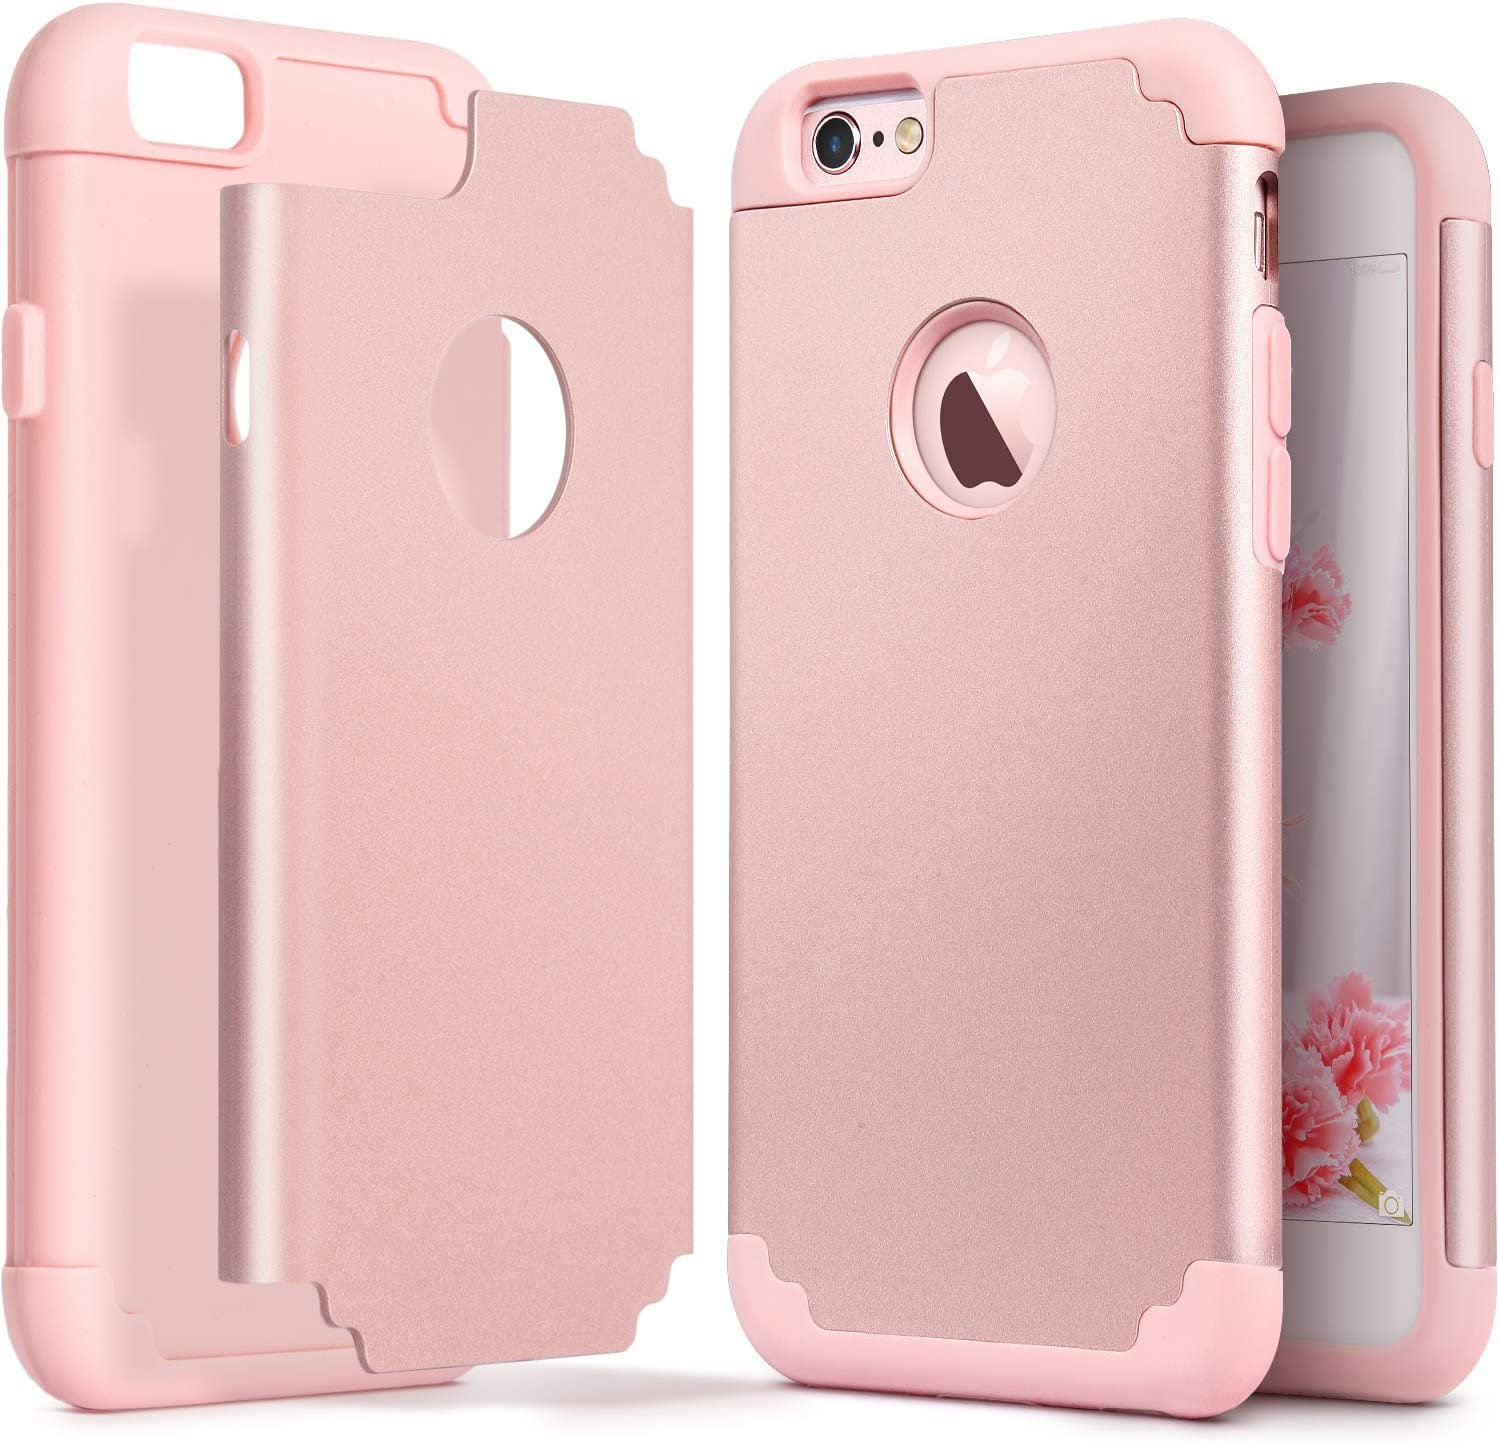 IDWELL iPhone 6S Case, iPhone 6 Case, Slim Fit [ Dual Layer Series ] Soft Silicone Hard Back Cover Bumper Protective Shock-Absorption Skid-Proof Anti-Scratch Case for iPhone 6/6S 4.7 inch, Rose Gold